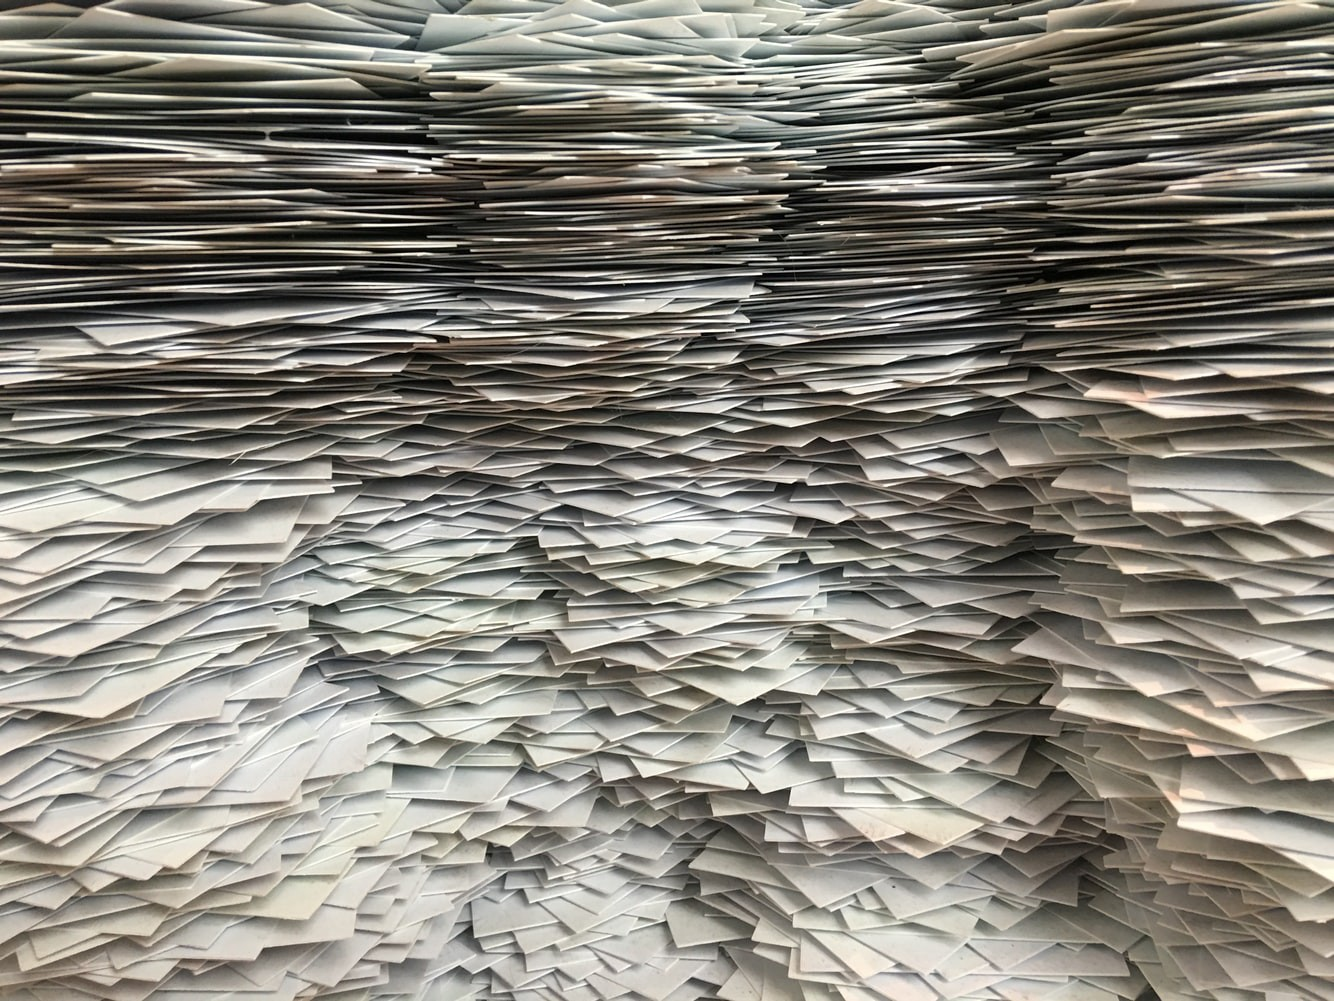 How to Manage Paper Chaos